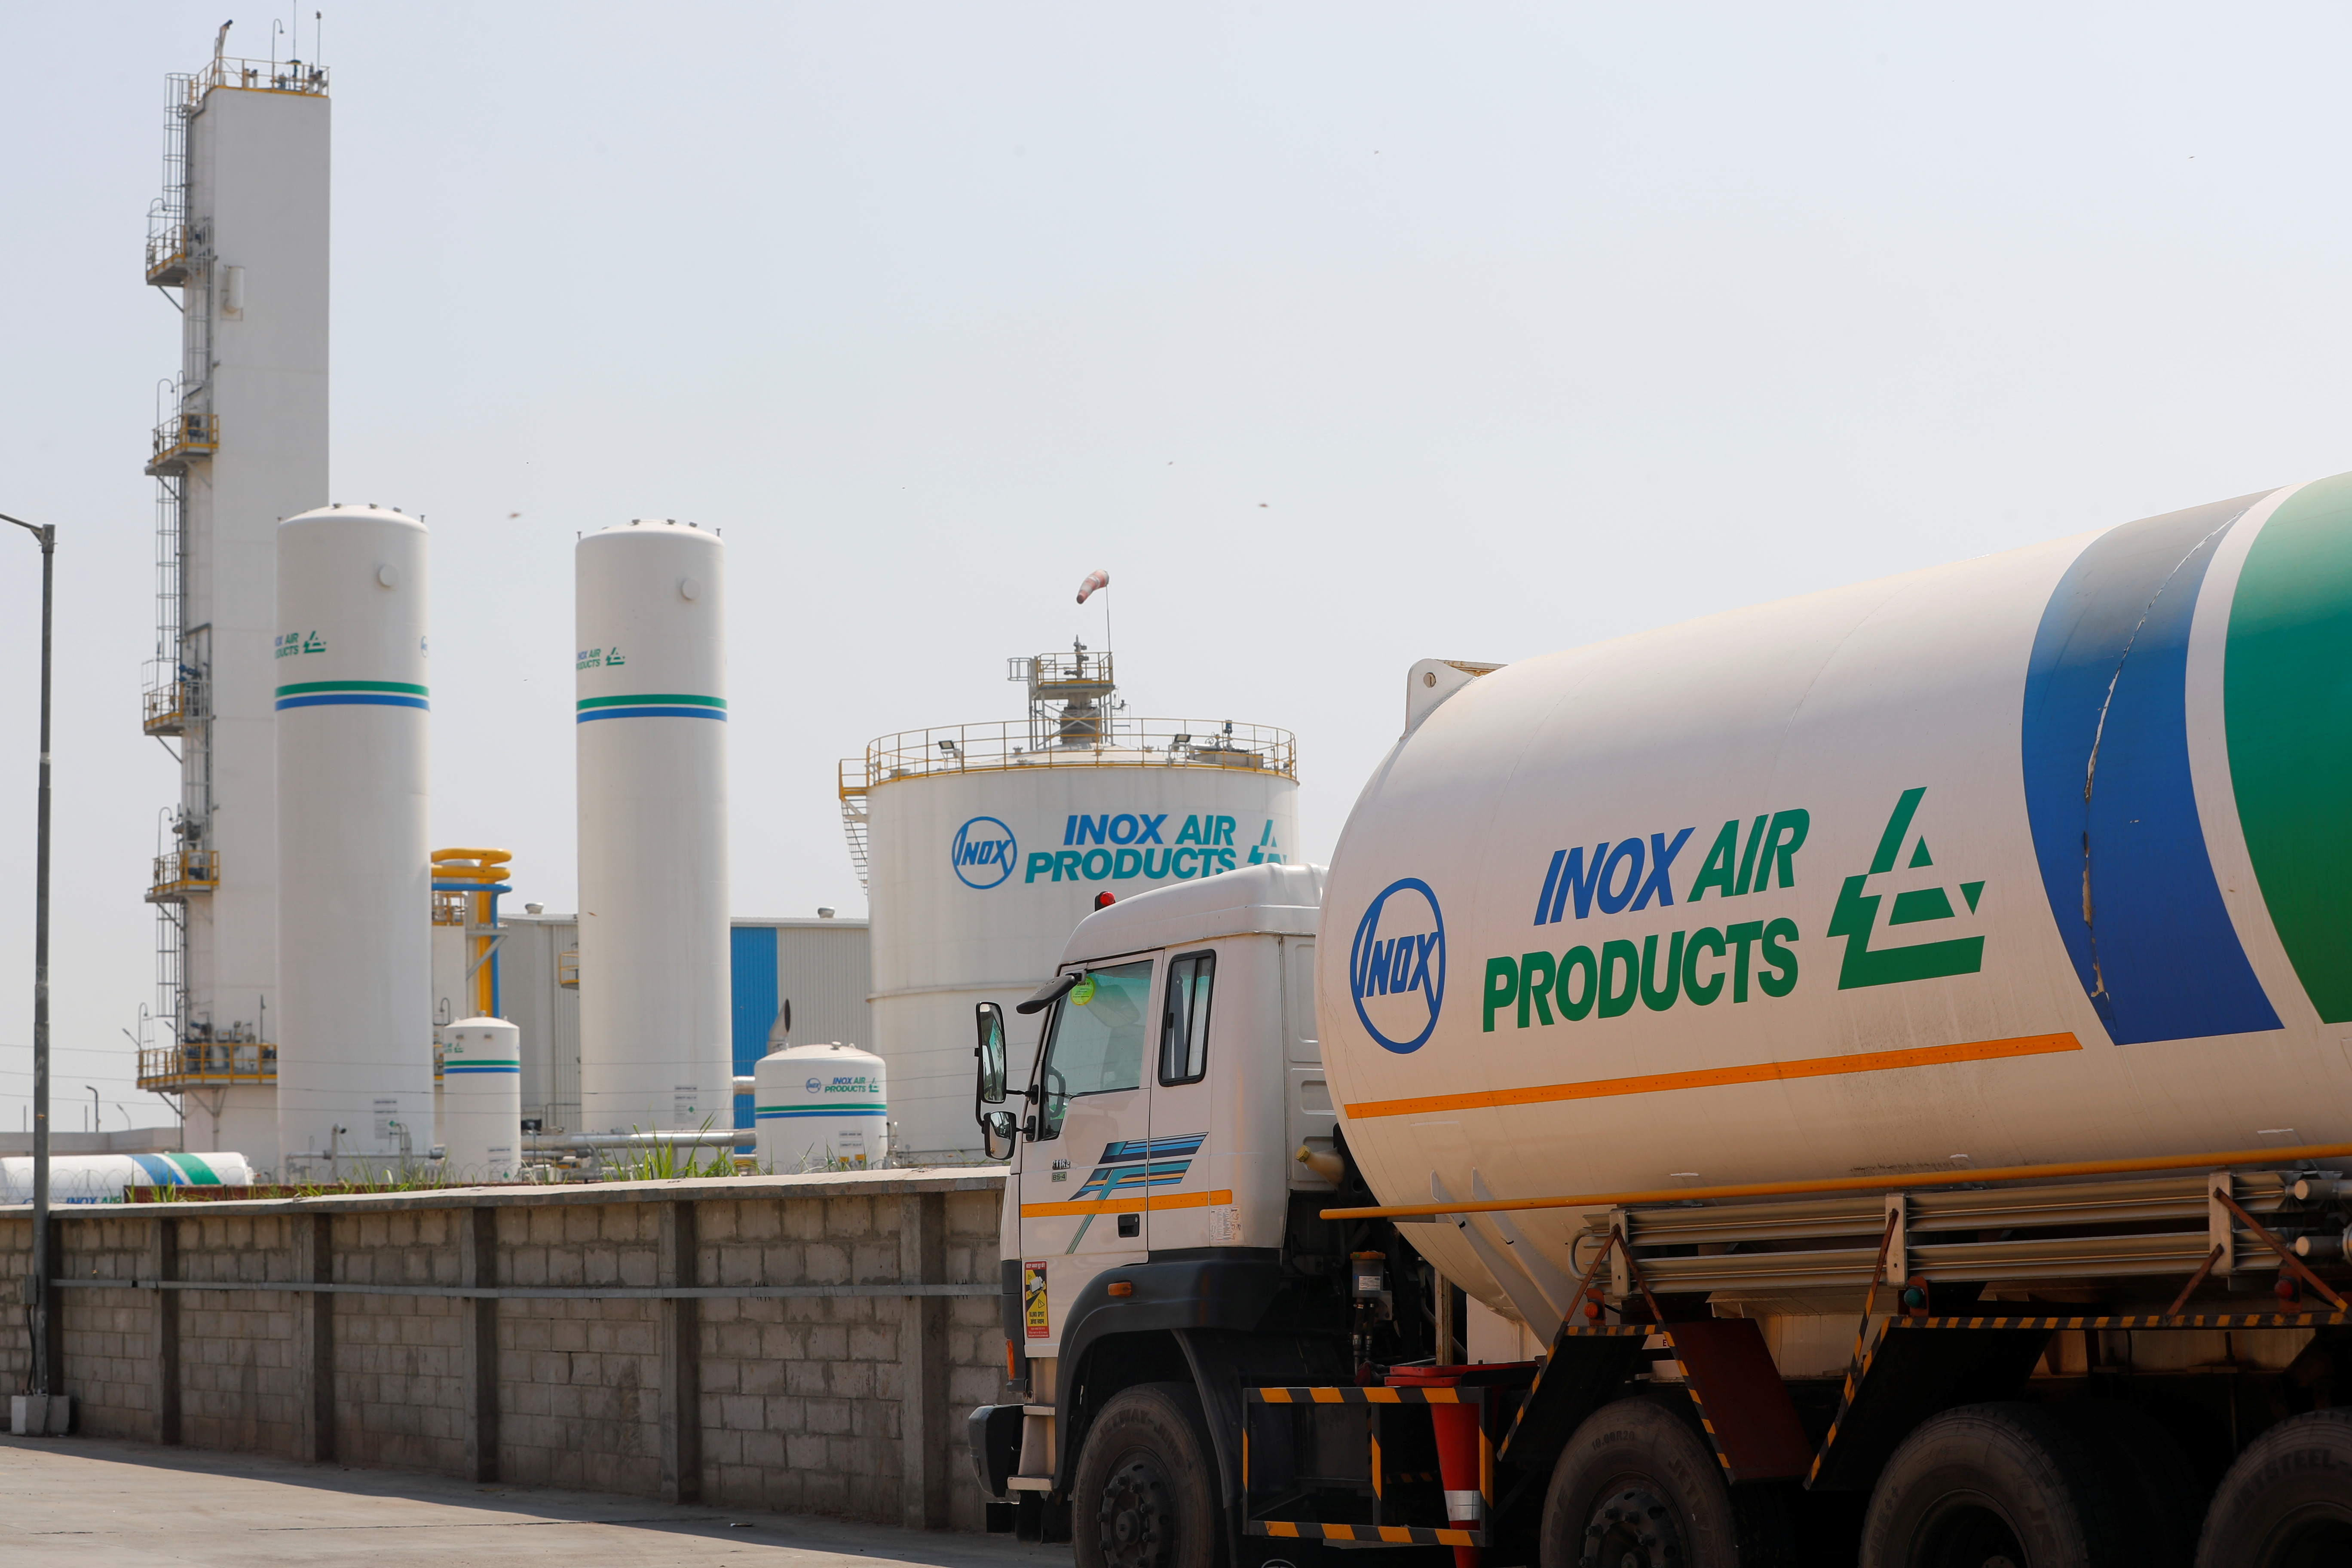 An empty tanker is seen outside an oxygen plant, amidst the spread of the coronavirus disease (COVID-19), in Ghaziabad, on the outskirts of New Delhi, India, April 22, 2021. REUTERS/Adnan Abidi